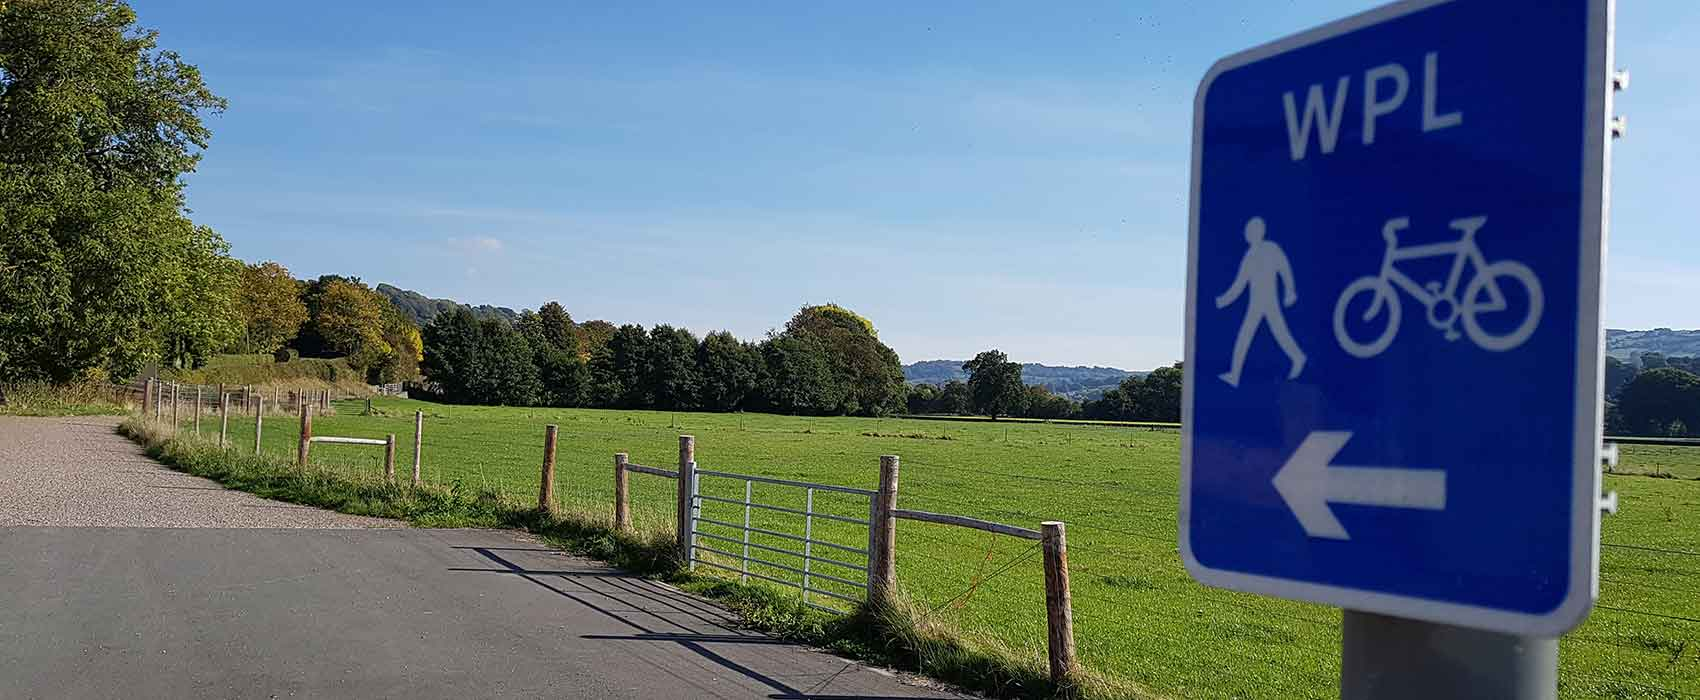 Cycle path and sign among green fields and trees